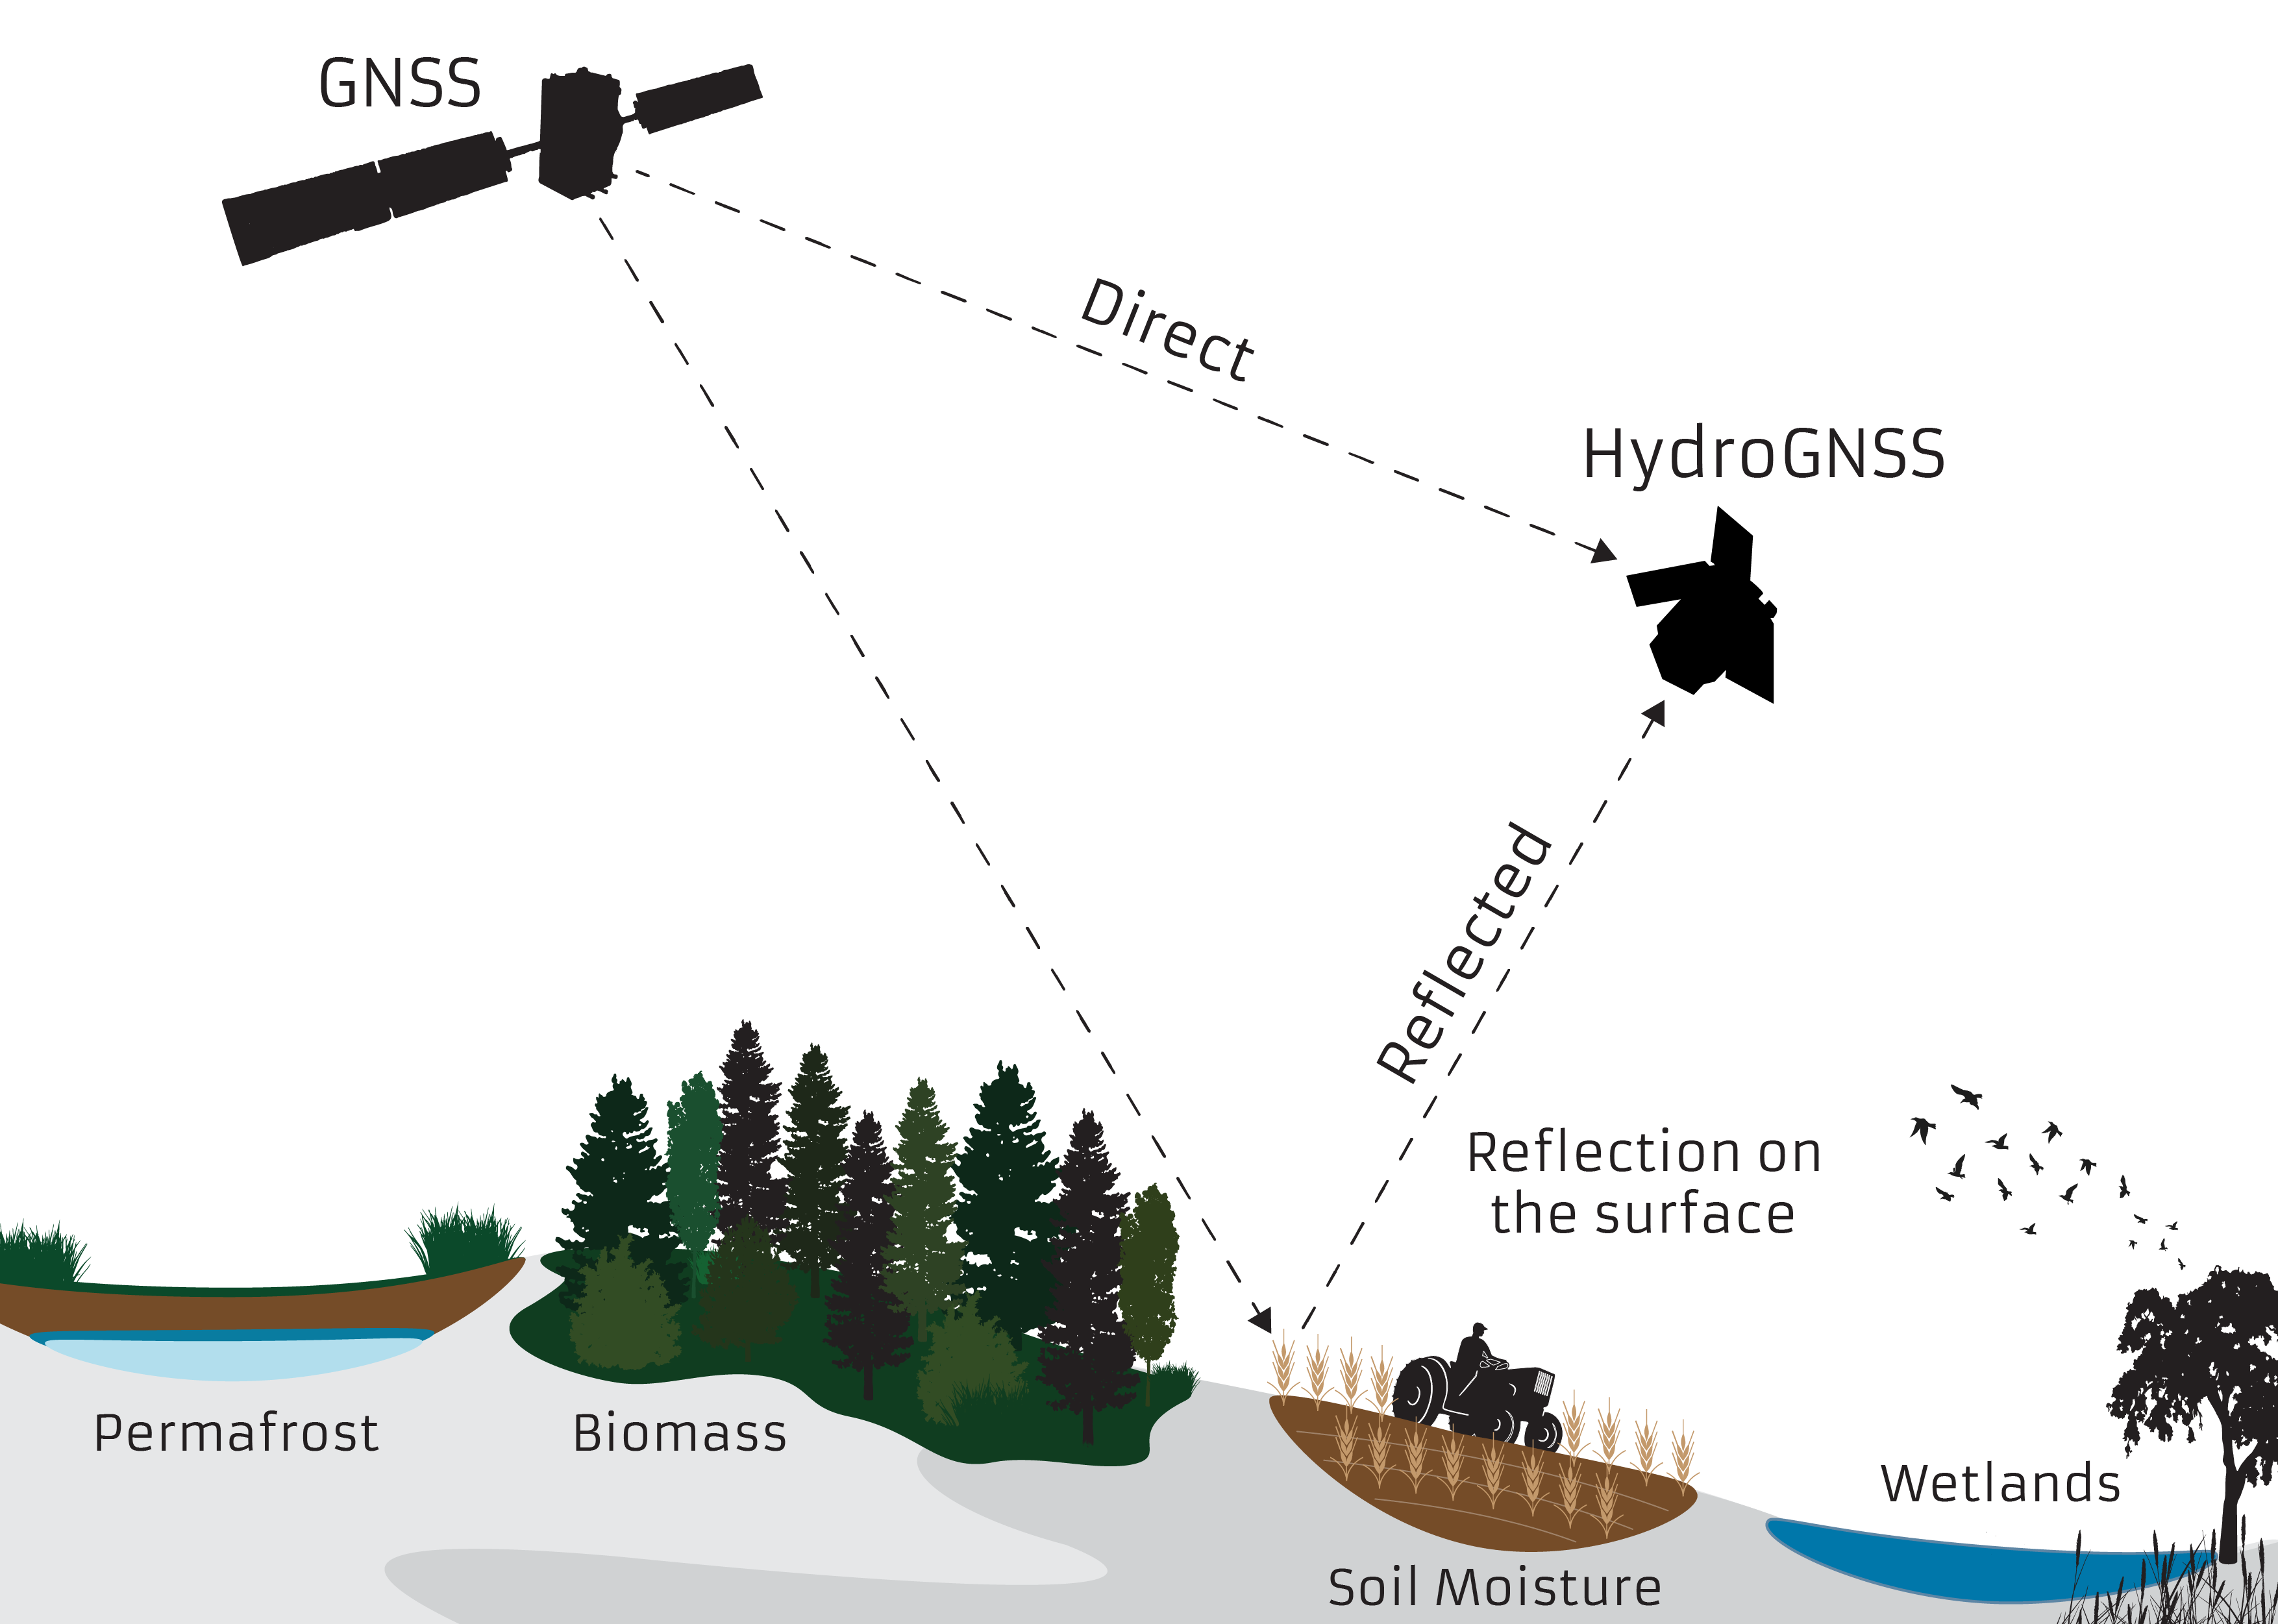 HydroGNSS mission graphic. Credit SSTL